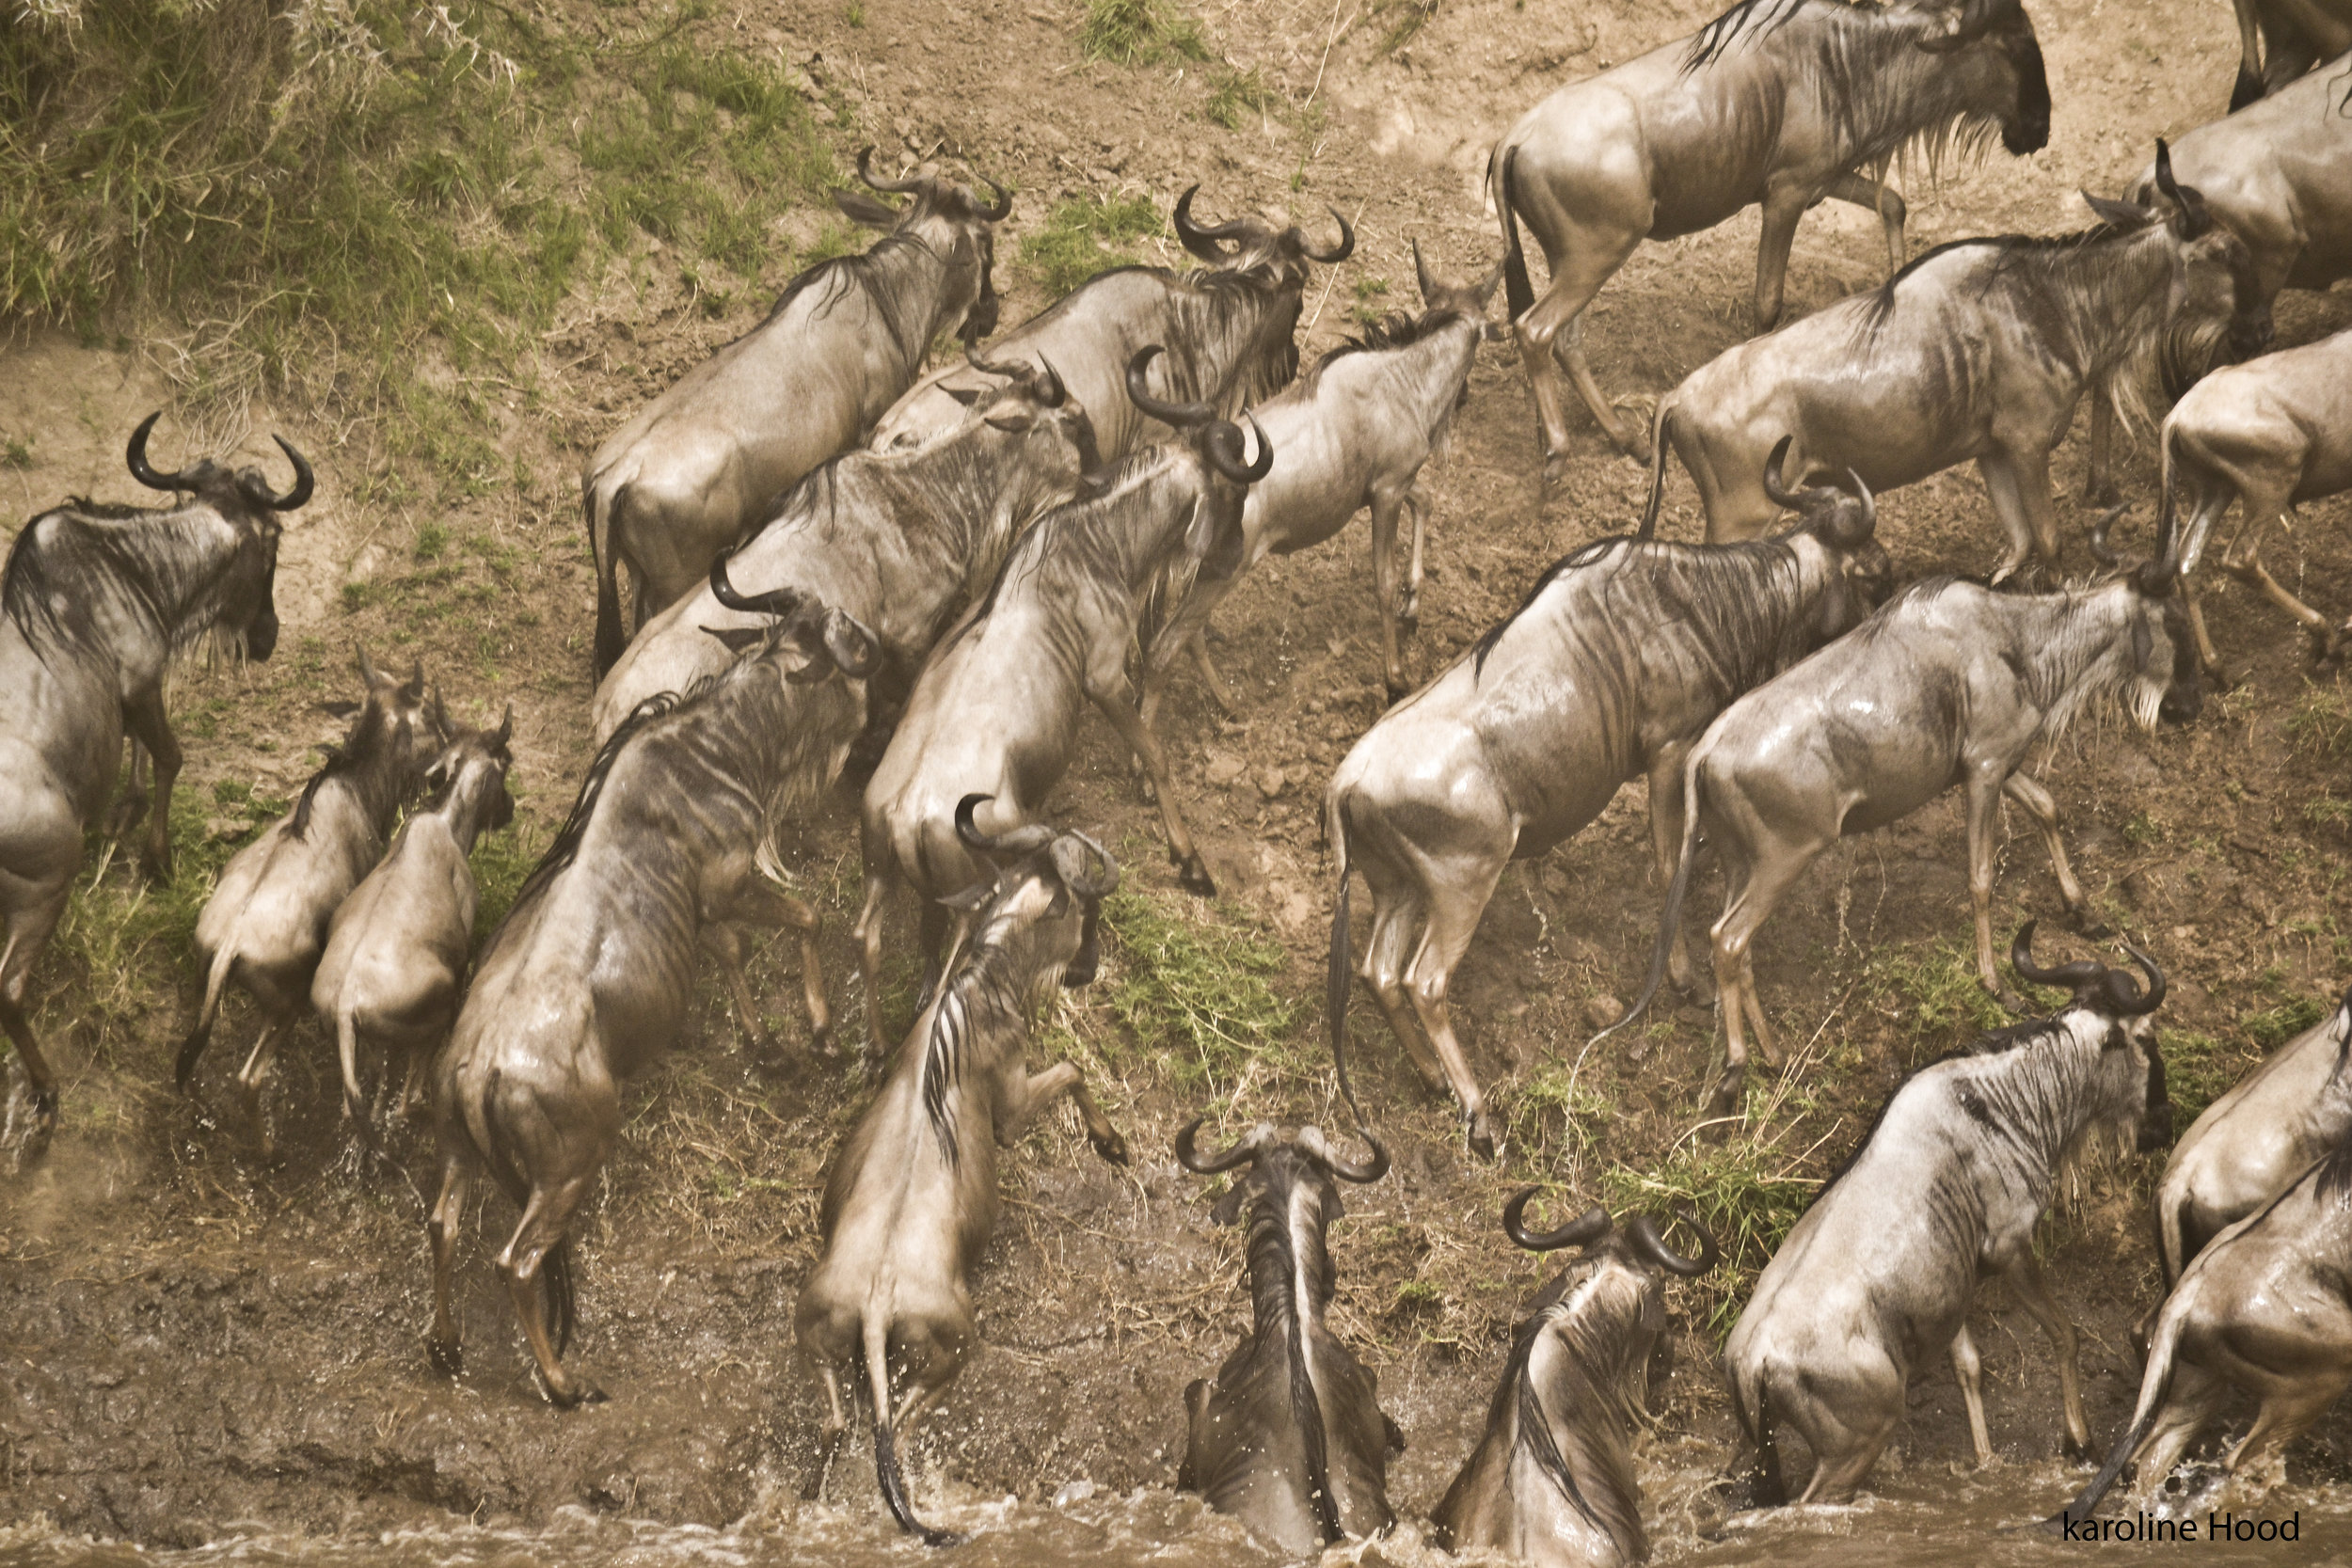 wildebeest crossing the river from Maasai Mara National Reserve into the Serengeti National Park, Tanzania. Many die during the crossing. Photo by Karoline Hood.